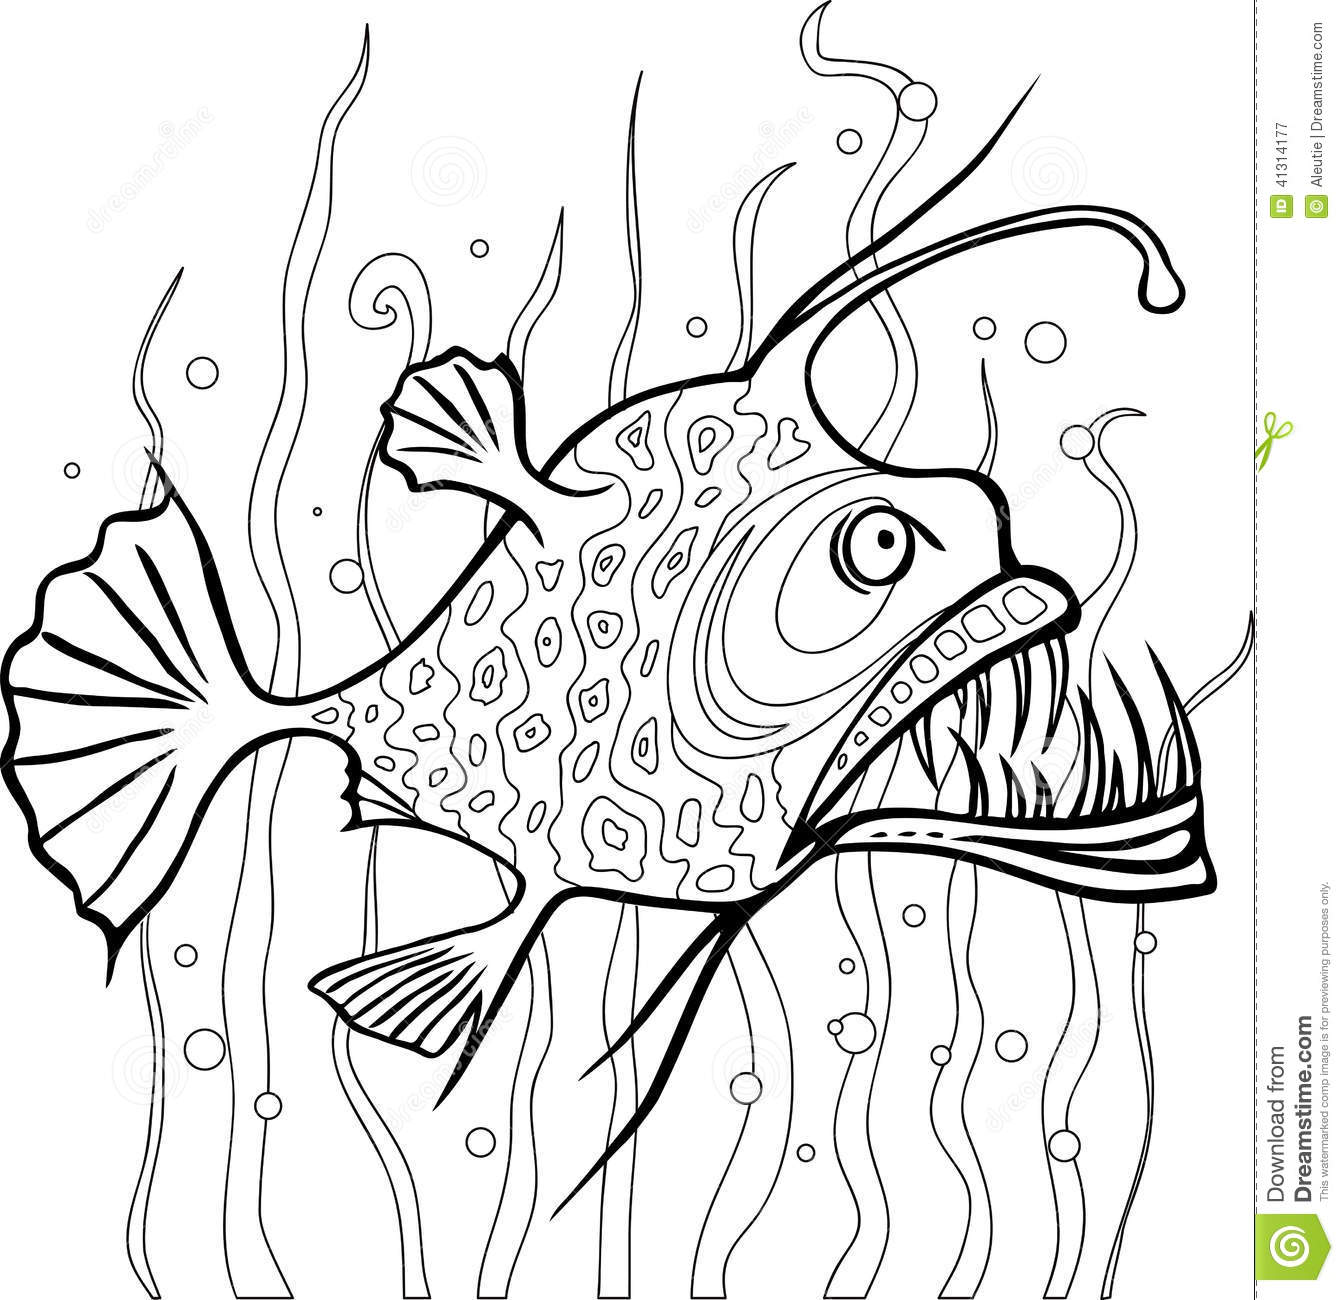 Anglerfish Coloring Page Stock Vector Illustration Of